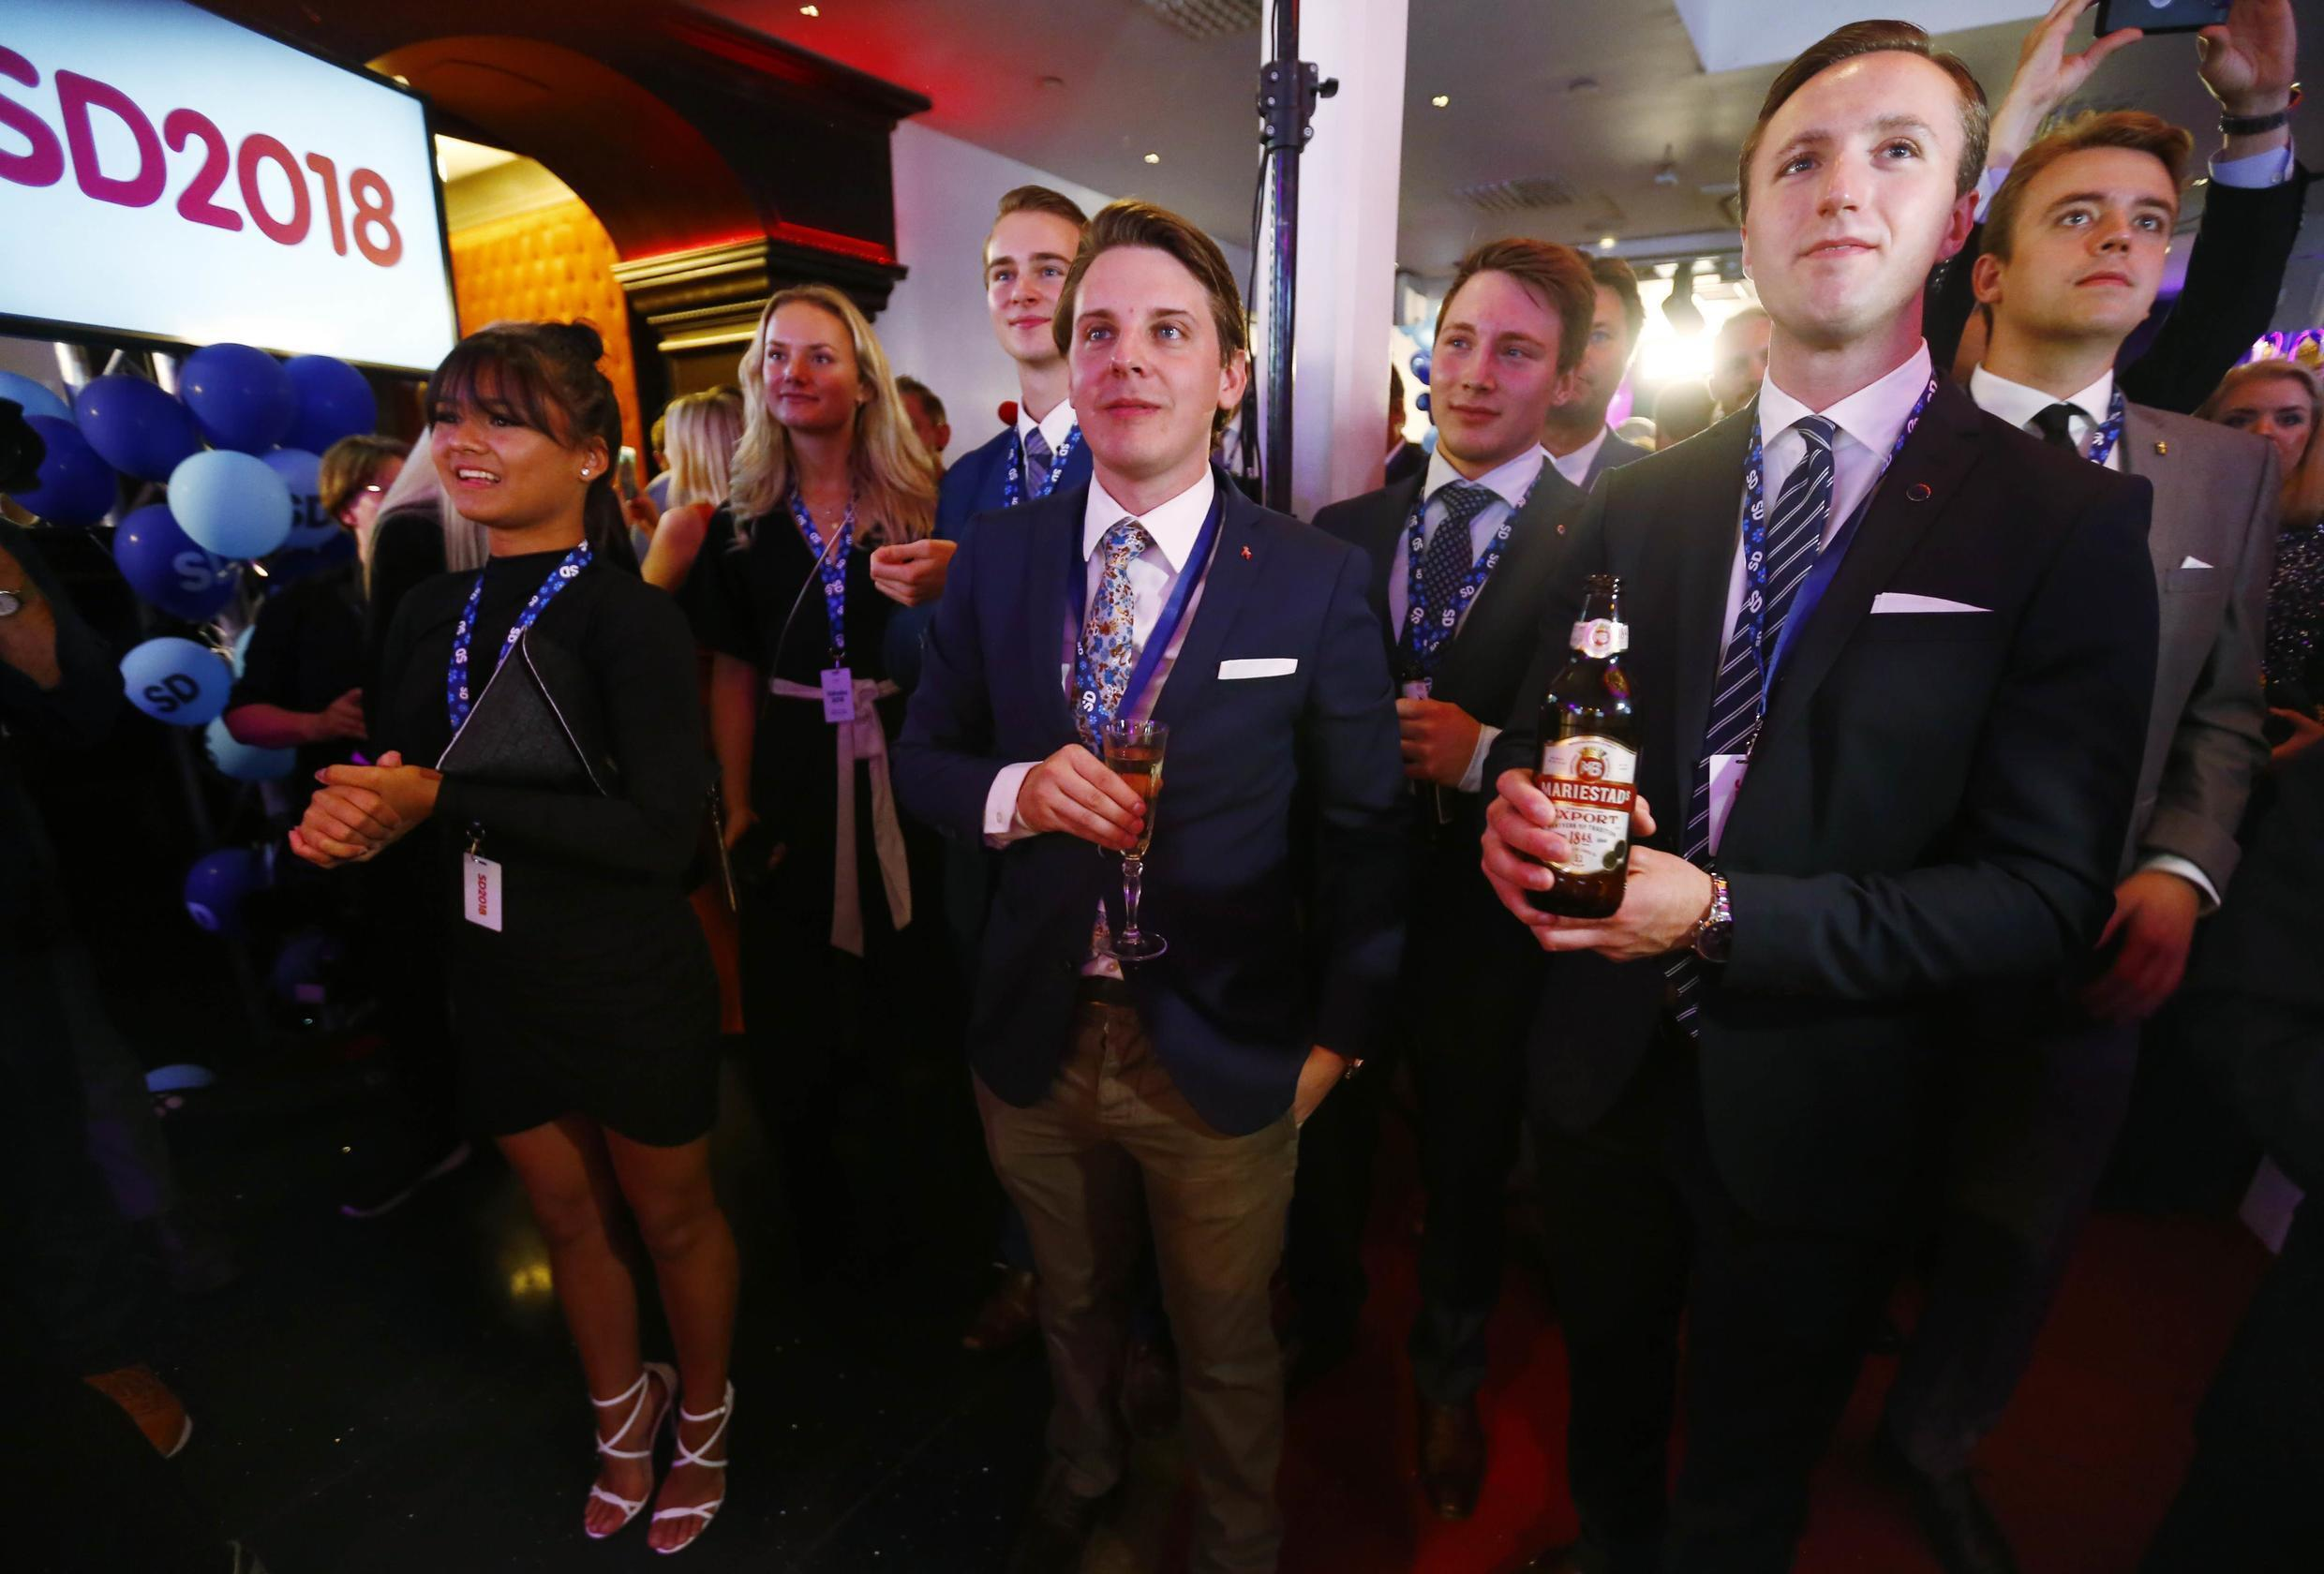 Swedish Social Democrats listen to the results of the election in Stockholm